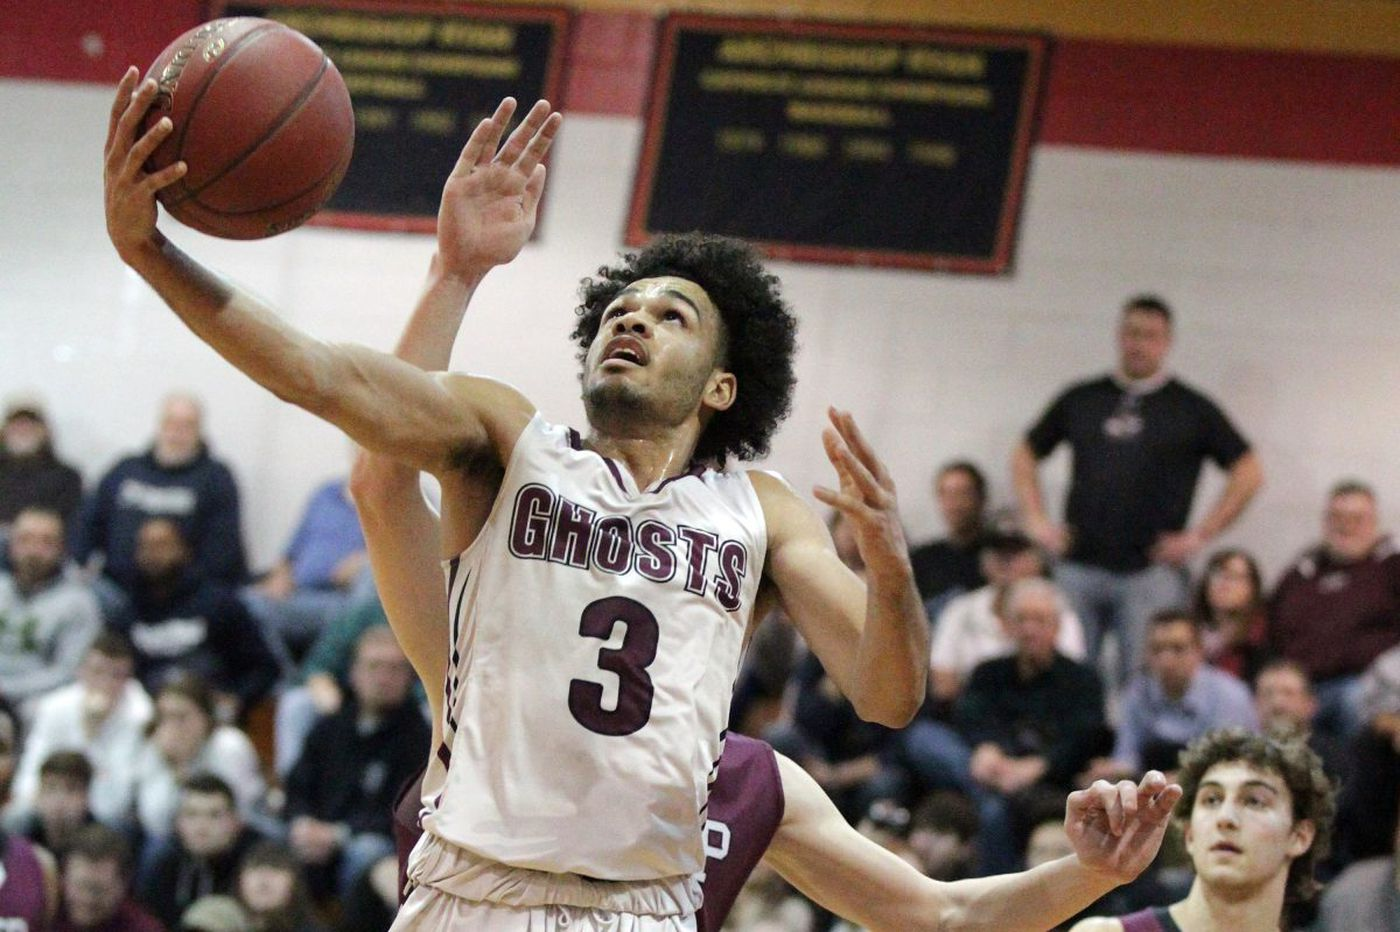 Robbie Heath's stock rises as Abington advances in PIAA state basketball playoffs